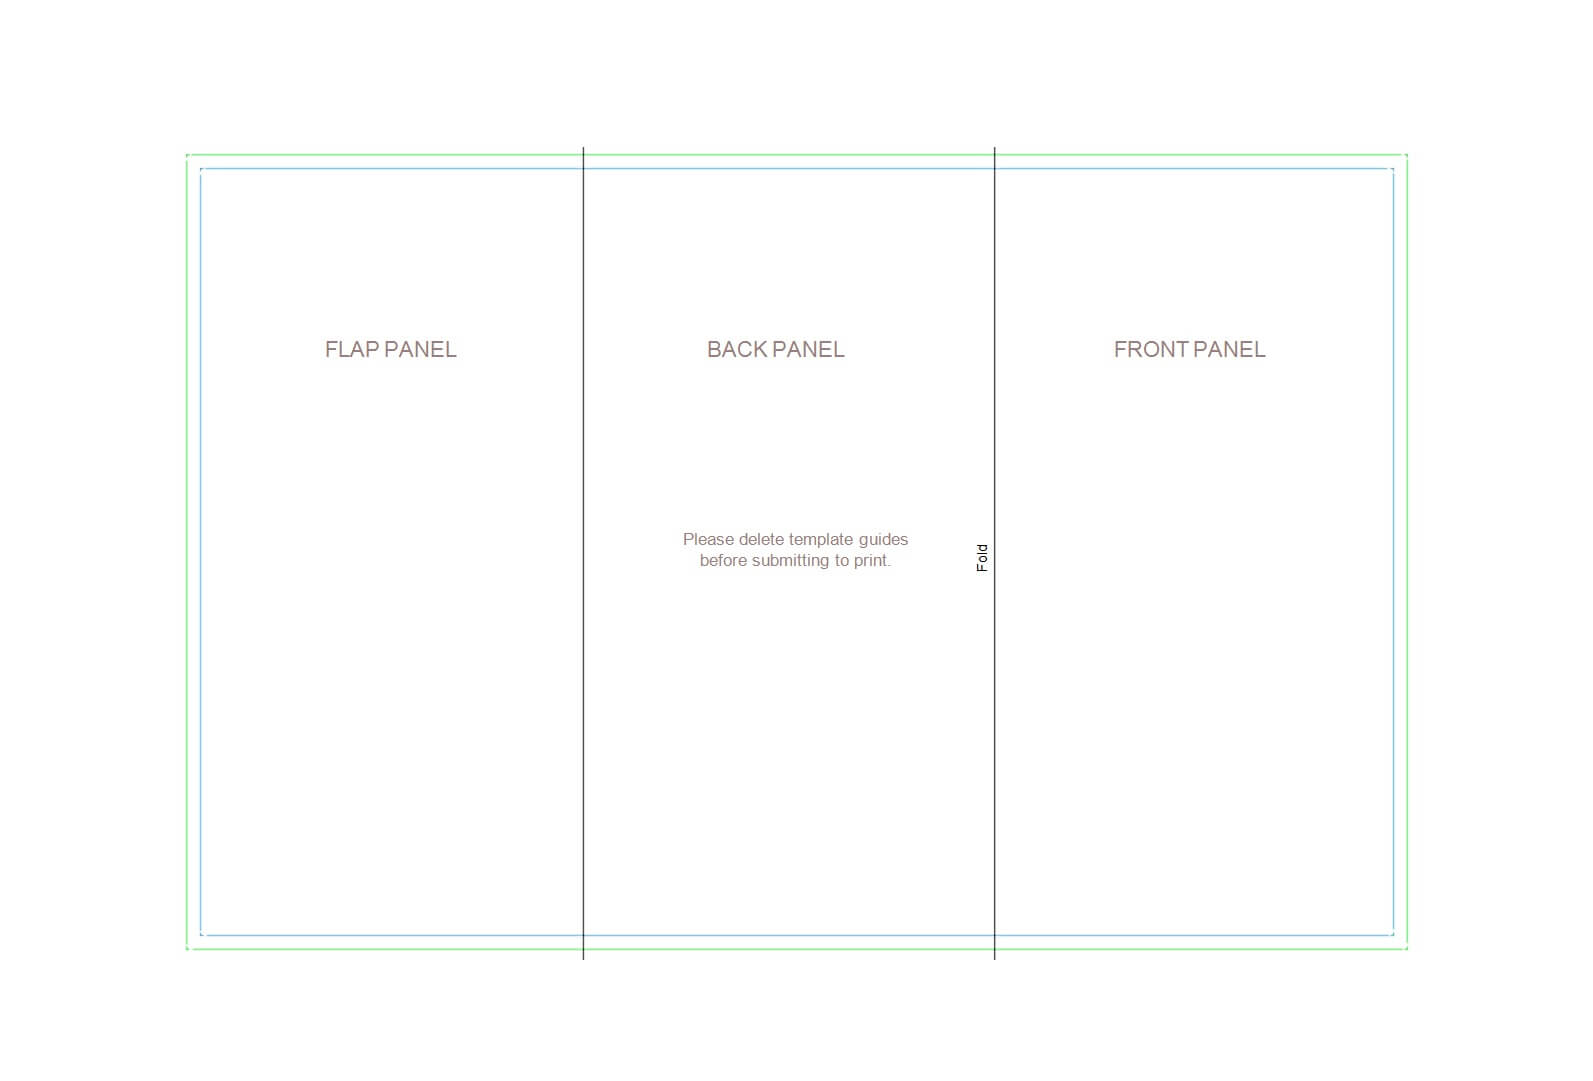 50 Free Pamphlet Templates [Word / Google Docs] ᐅ Template Lab in Microsoft Word Brochure Template Free